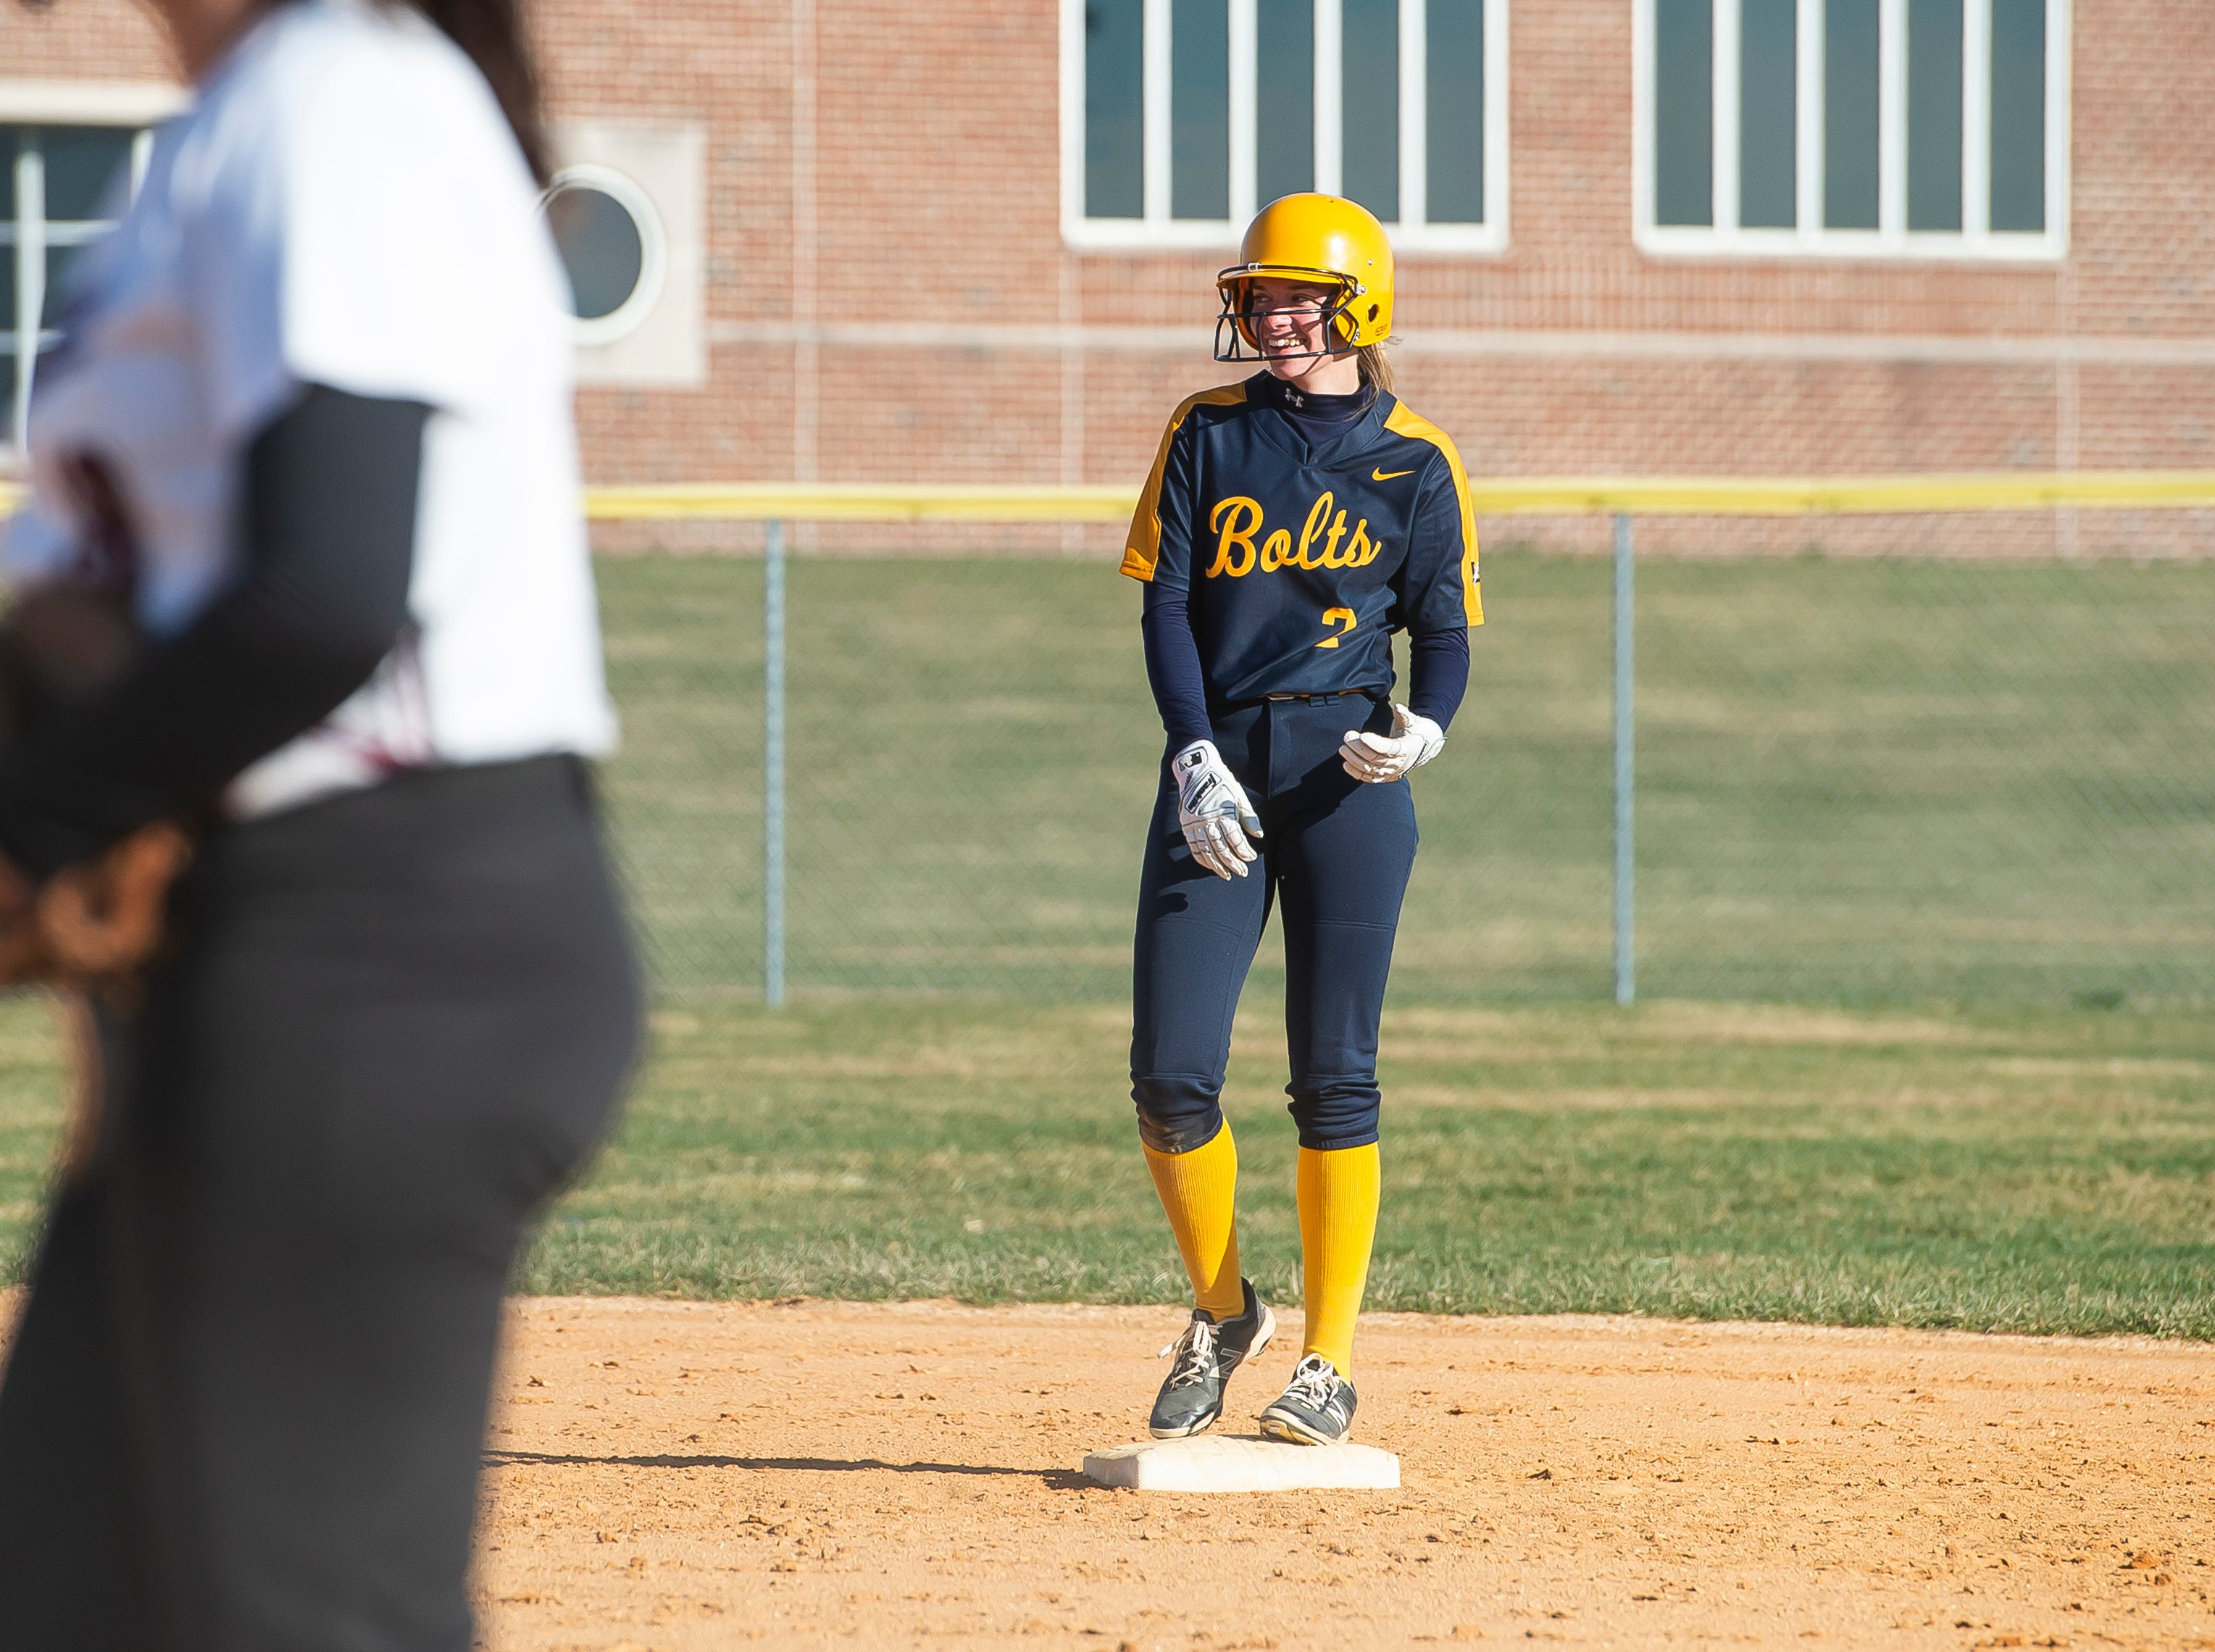 Littlestown's Caitlin Eader smiles on second after getting a steal during a YAIAA softball game against Gettysburg on Monday, April 1, 2019. The Bolts won 10-4.